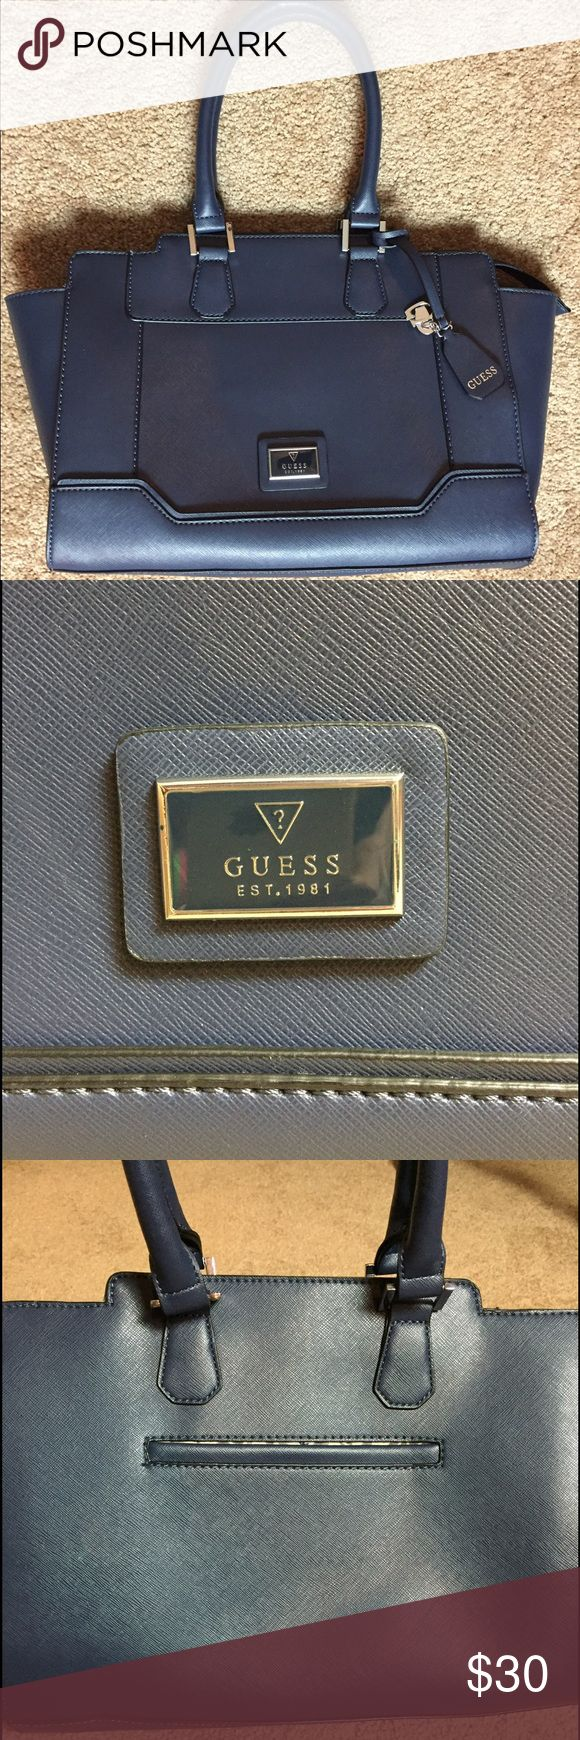 Navy blue Guess handbag Navy blue Guess handbag with silver detail. Brand new, worn only once and in great condition. Guess Bags